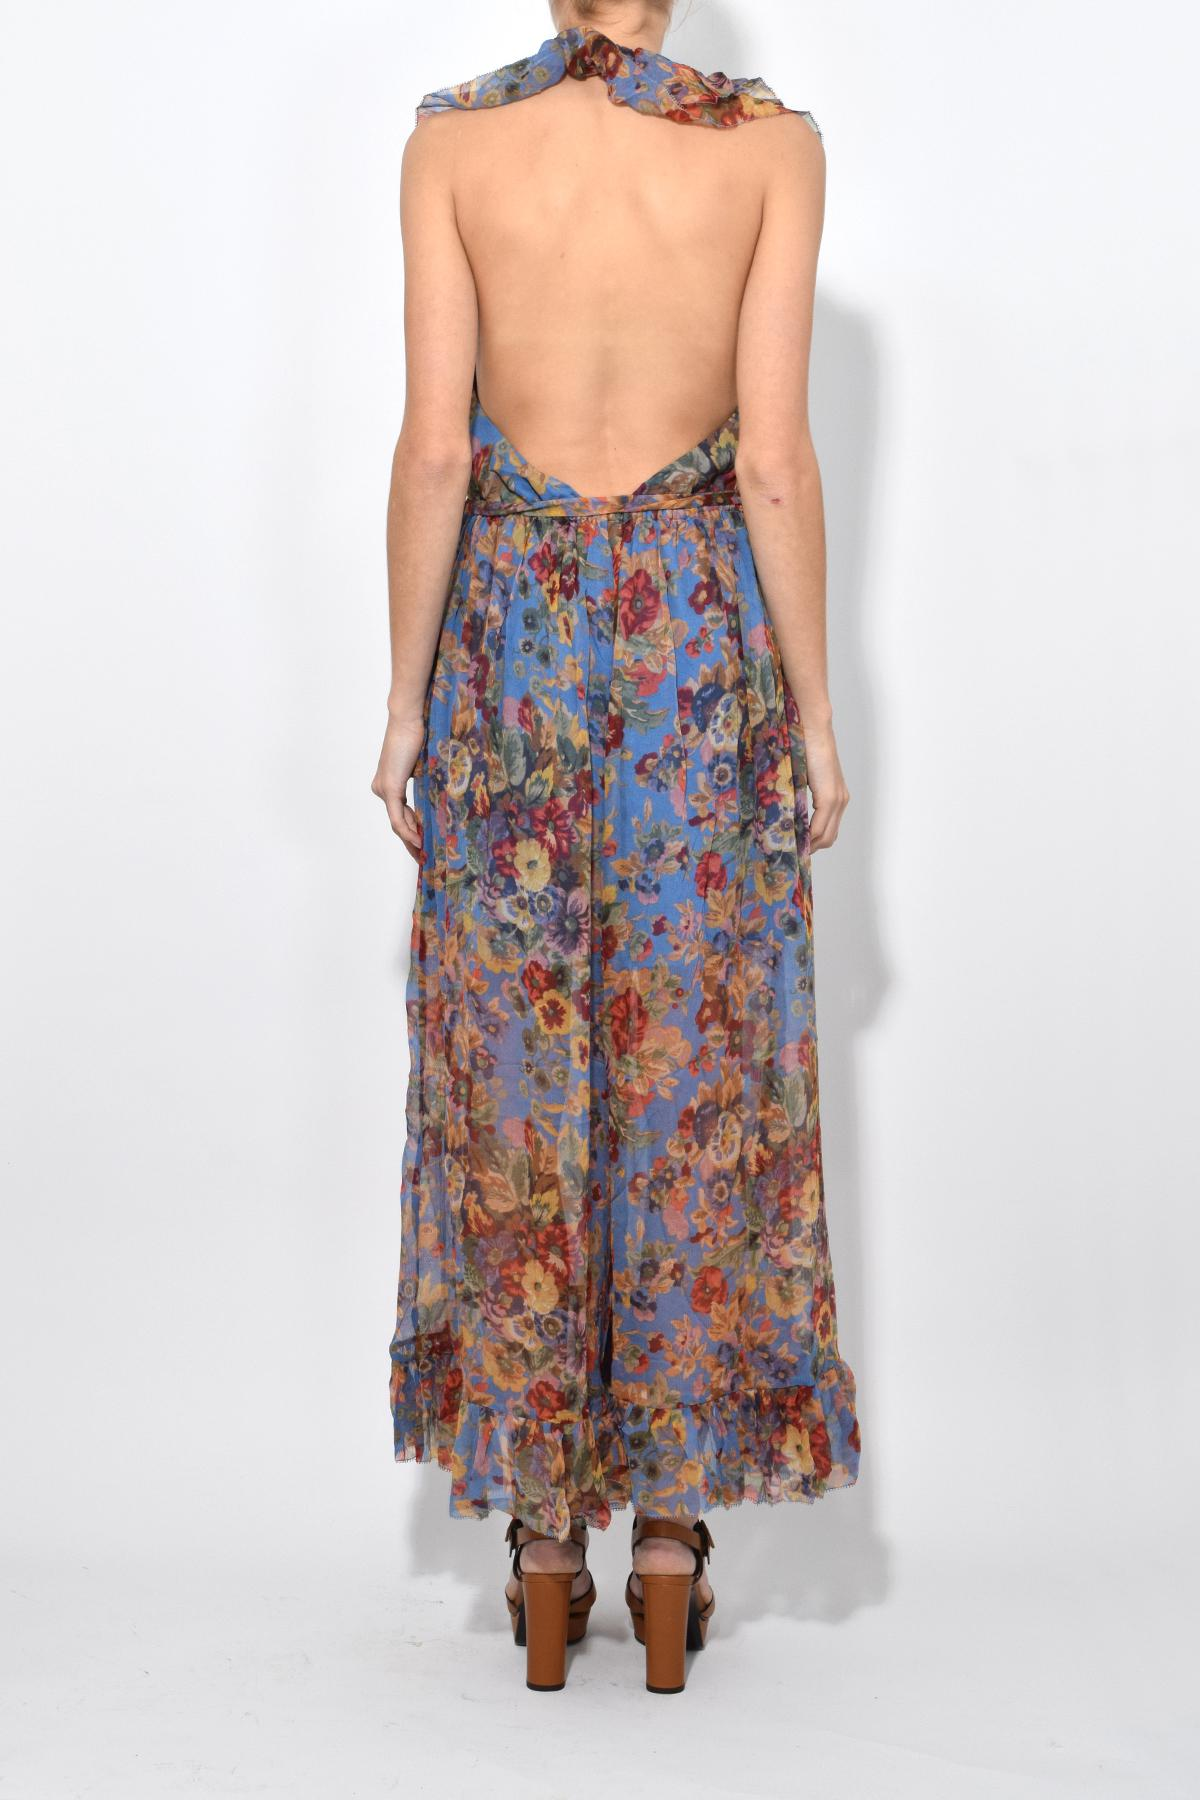 958e28e5a51 Lyst - Zimmermann Lovelorn Frill Jumpsuit In Blue Floral in Blue